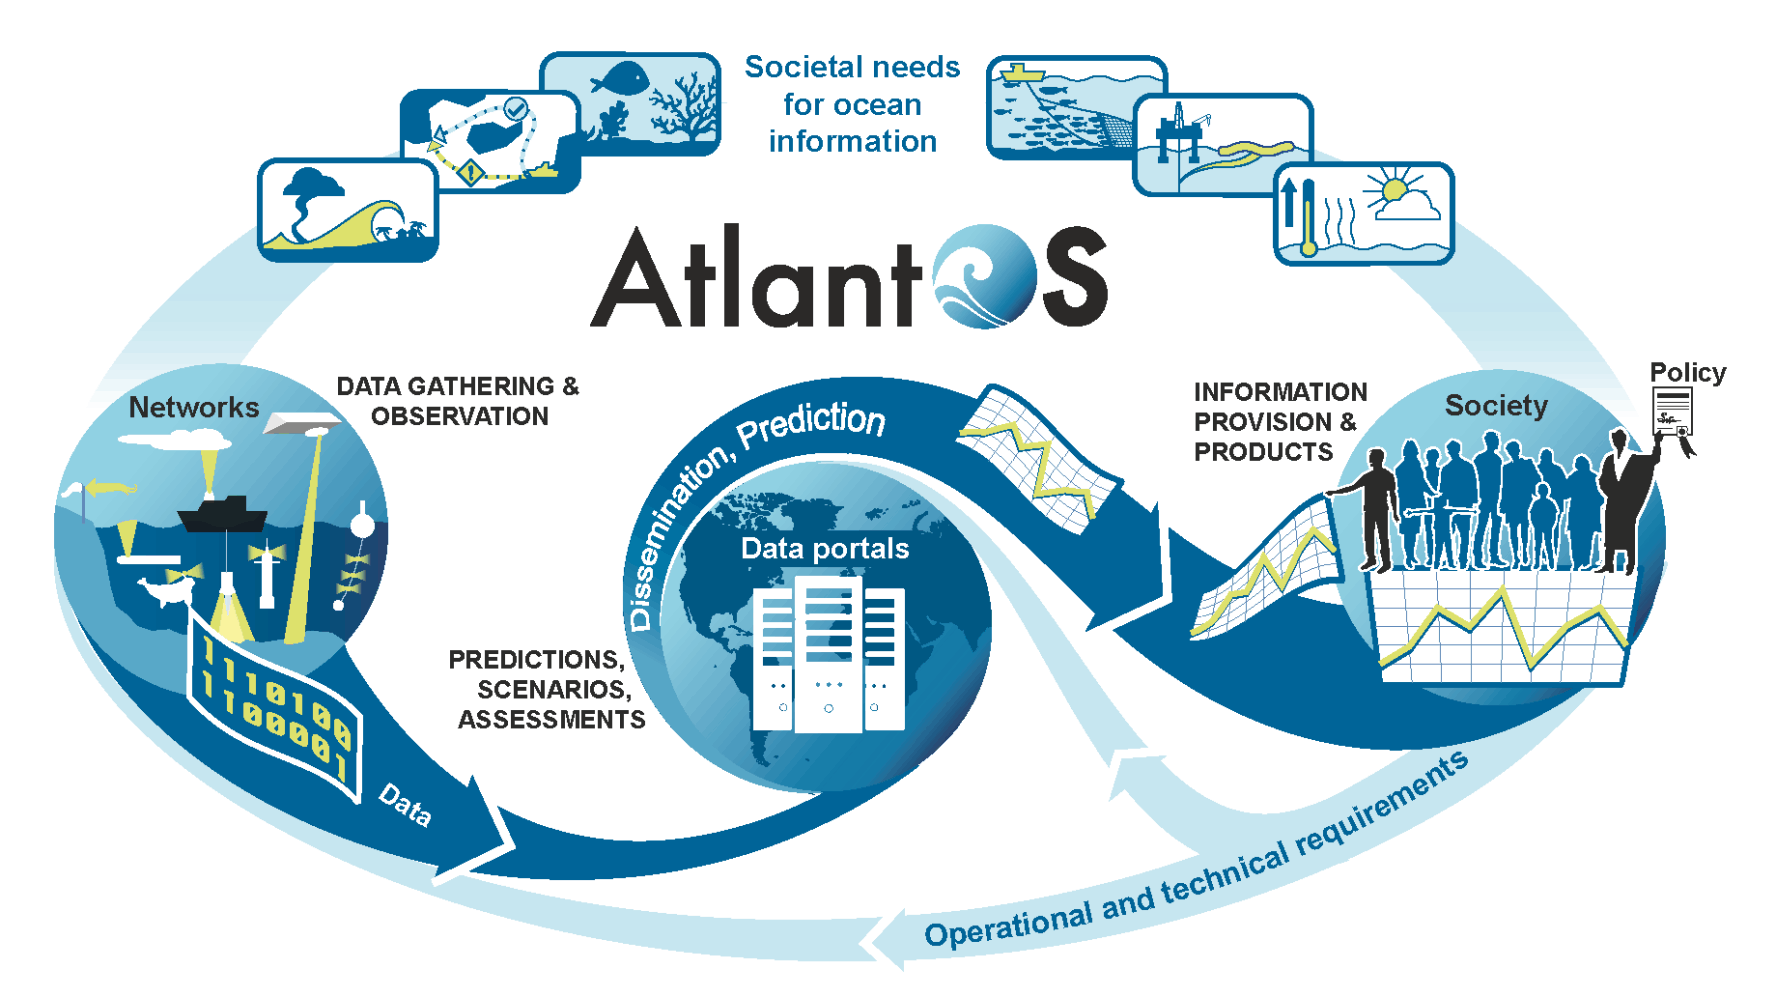 AtlantOS value chain: From societal need to observations and information products.